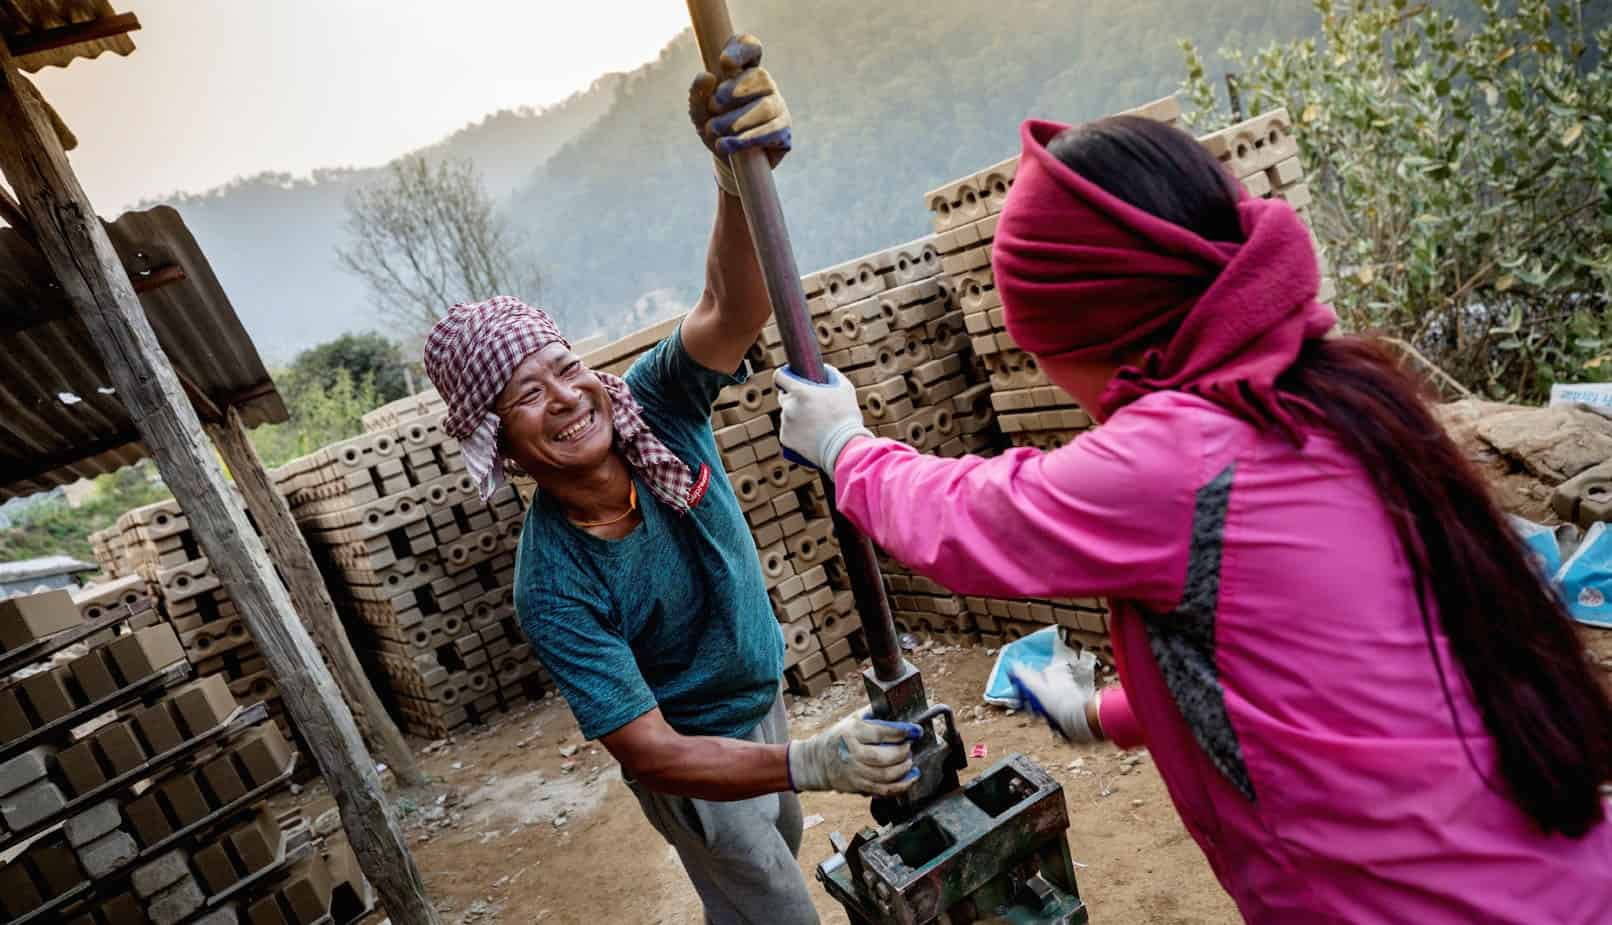 A man and woman work machinery by a pile of bricks